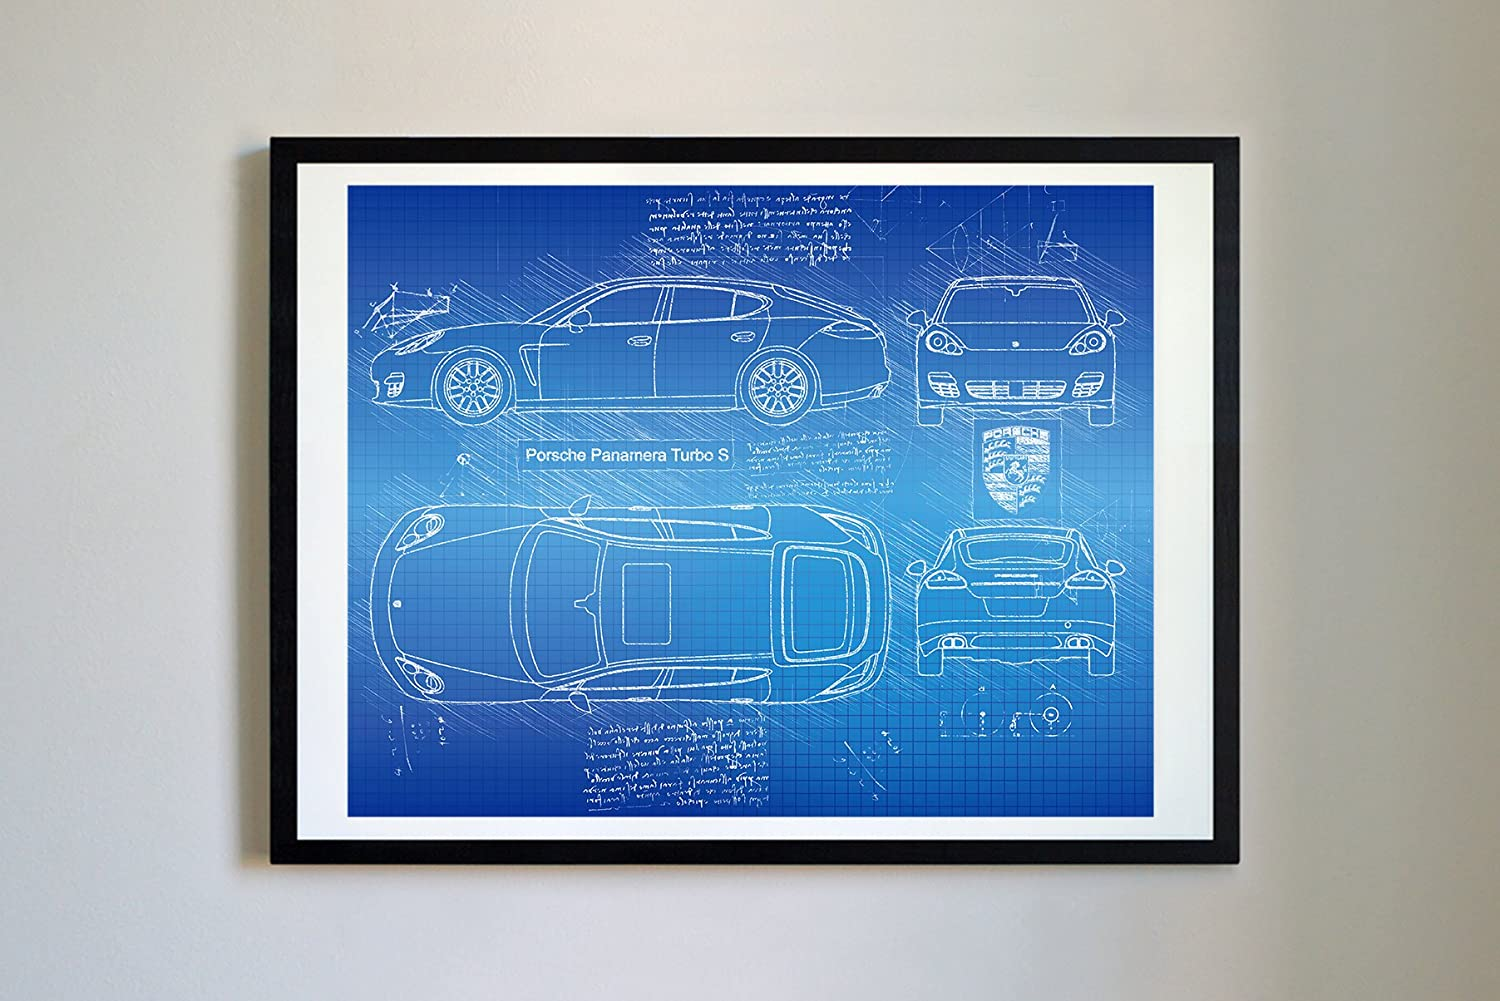 Amazon.com: DolanPaperCo #290 Porsche Panamera Turbo S 2014 Art Print, da Vinci Sketch – Unframed – Multiple Size/Color Options (8x10, Blueprint): Home & ...